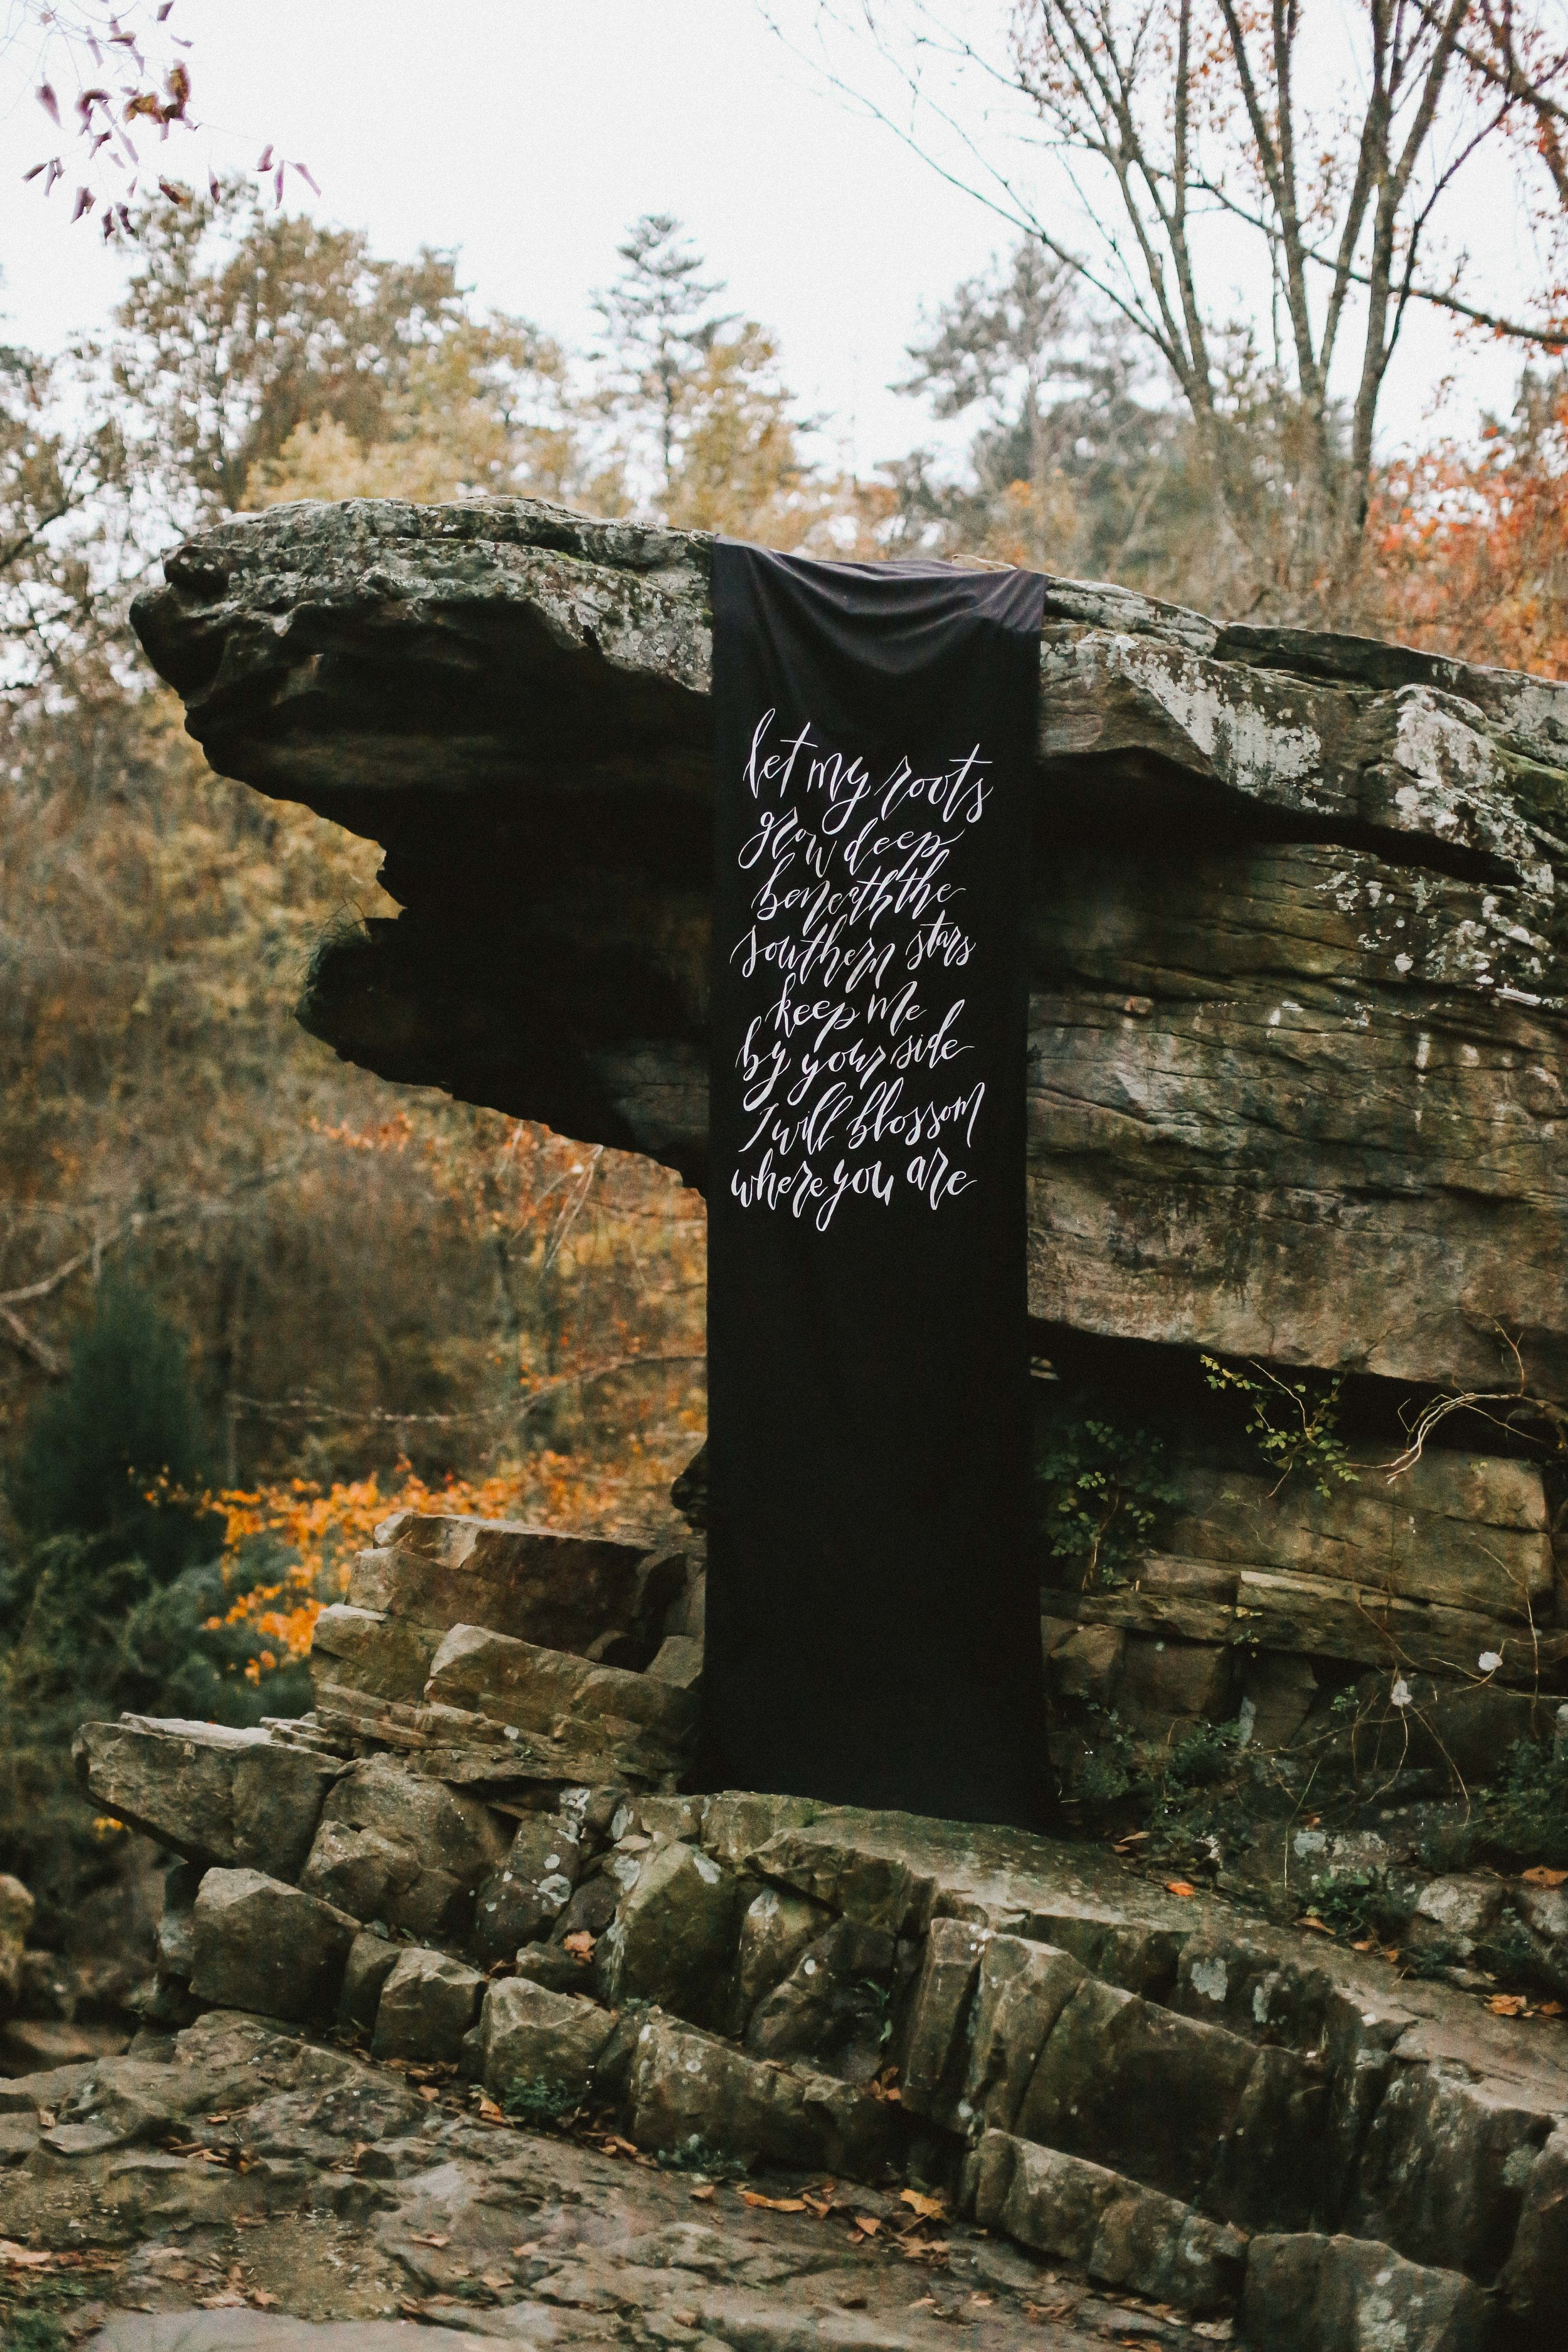 Moody Fall Wedding Inspiration - Black and White Wedding Banner/Sign - Autumn Wedding Ideas